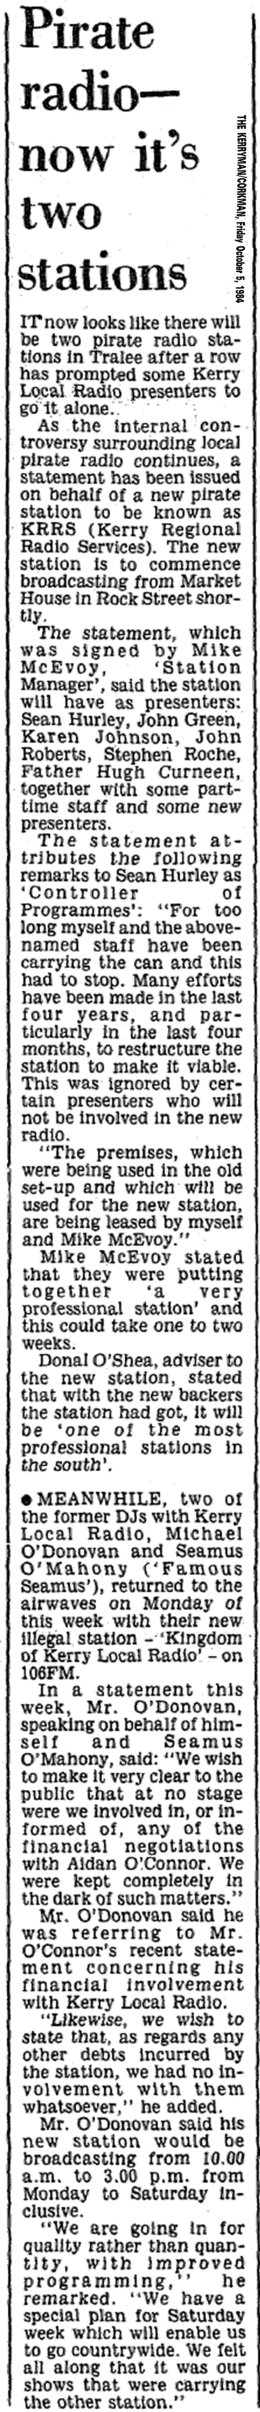 Pirate radio - now it's two stations was a newspaper headline from The Kerryman dated October 5th 1984